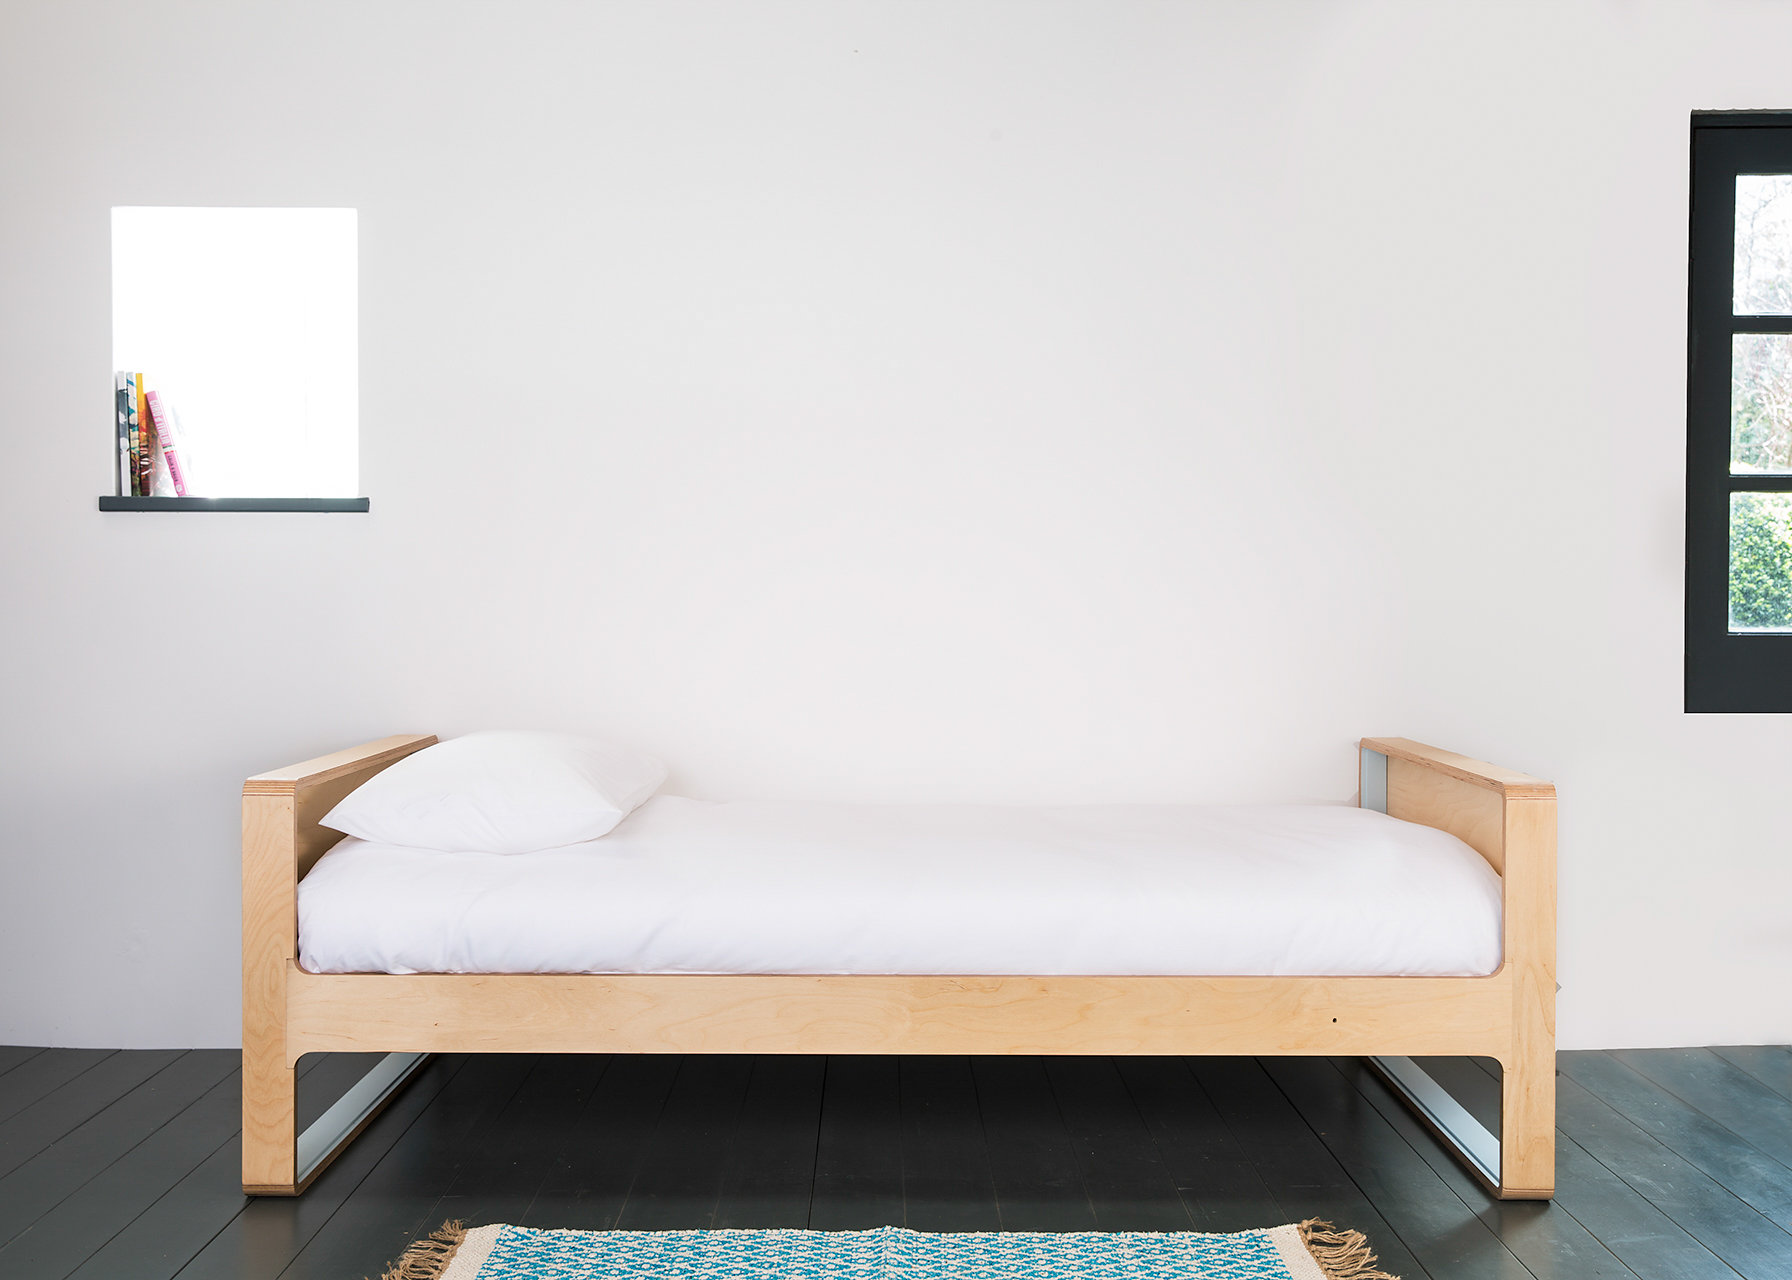 Skandi style full size single bed with sprung beech slats. This bed can also be made to take a 2000mm long mattress.  material: birch ply  dimensions: l 2020  h 1600  d 980    to fit 900 x 1900 matress  price: from £850